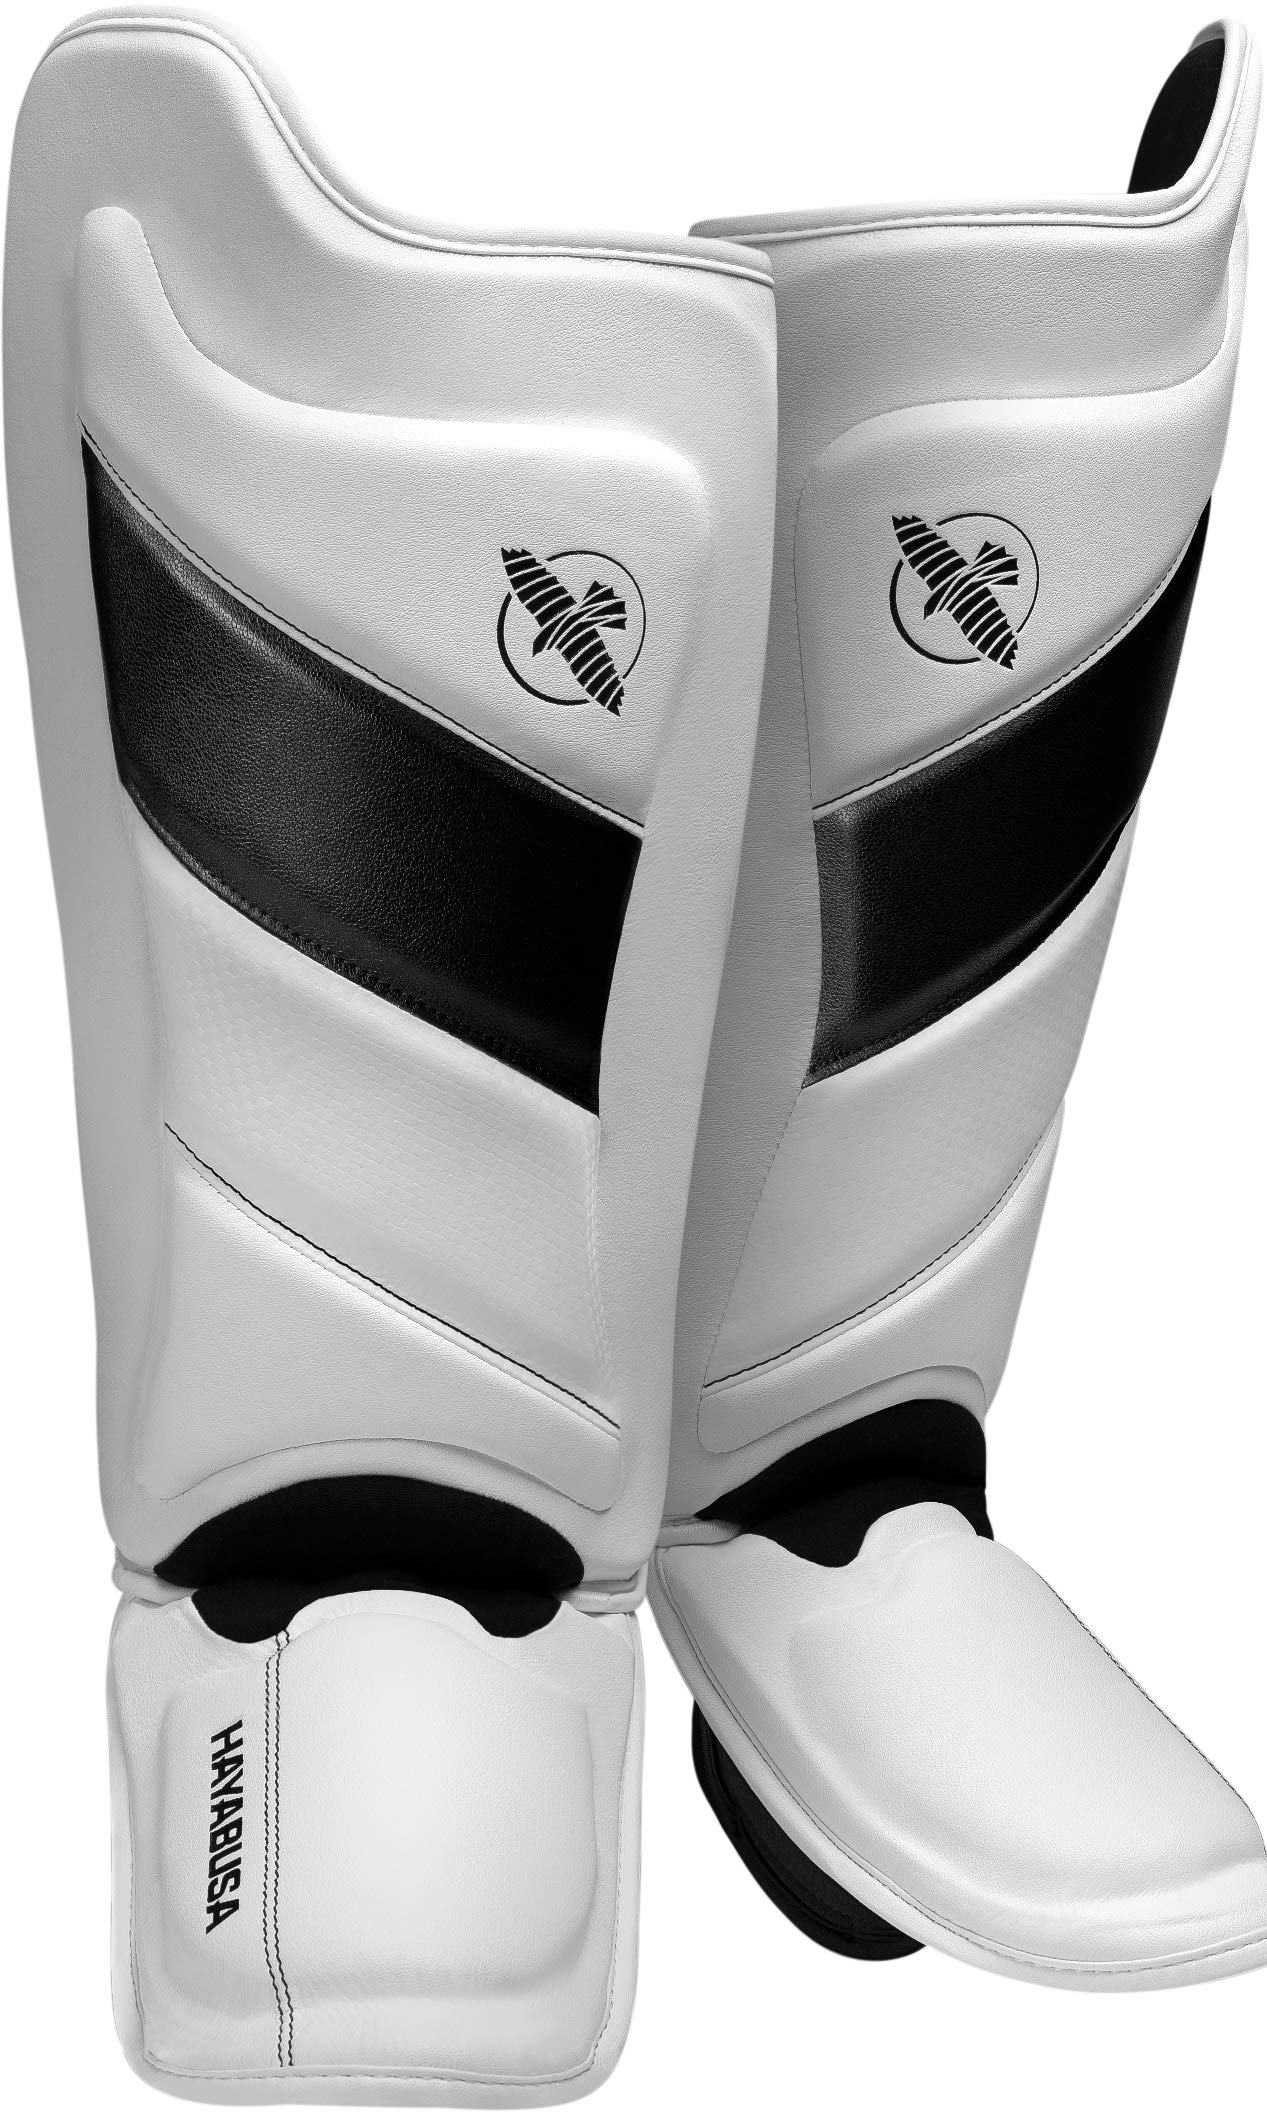 Hayabusa Shin Guards | T3 Muay Thai and Kickboxing | Men and Women | White/Black | Large by Hayabusa